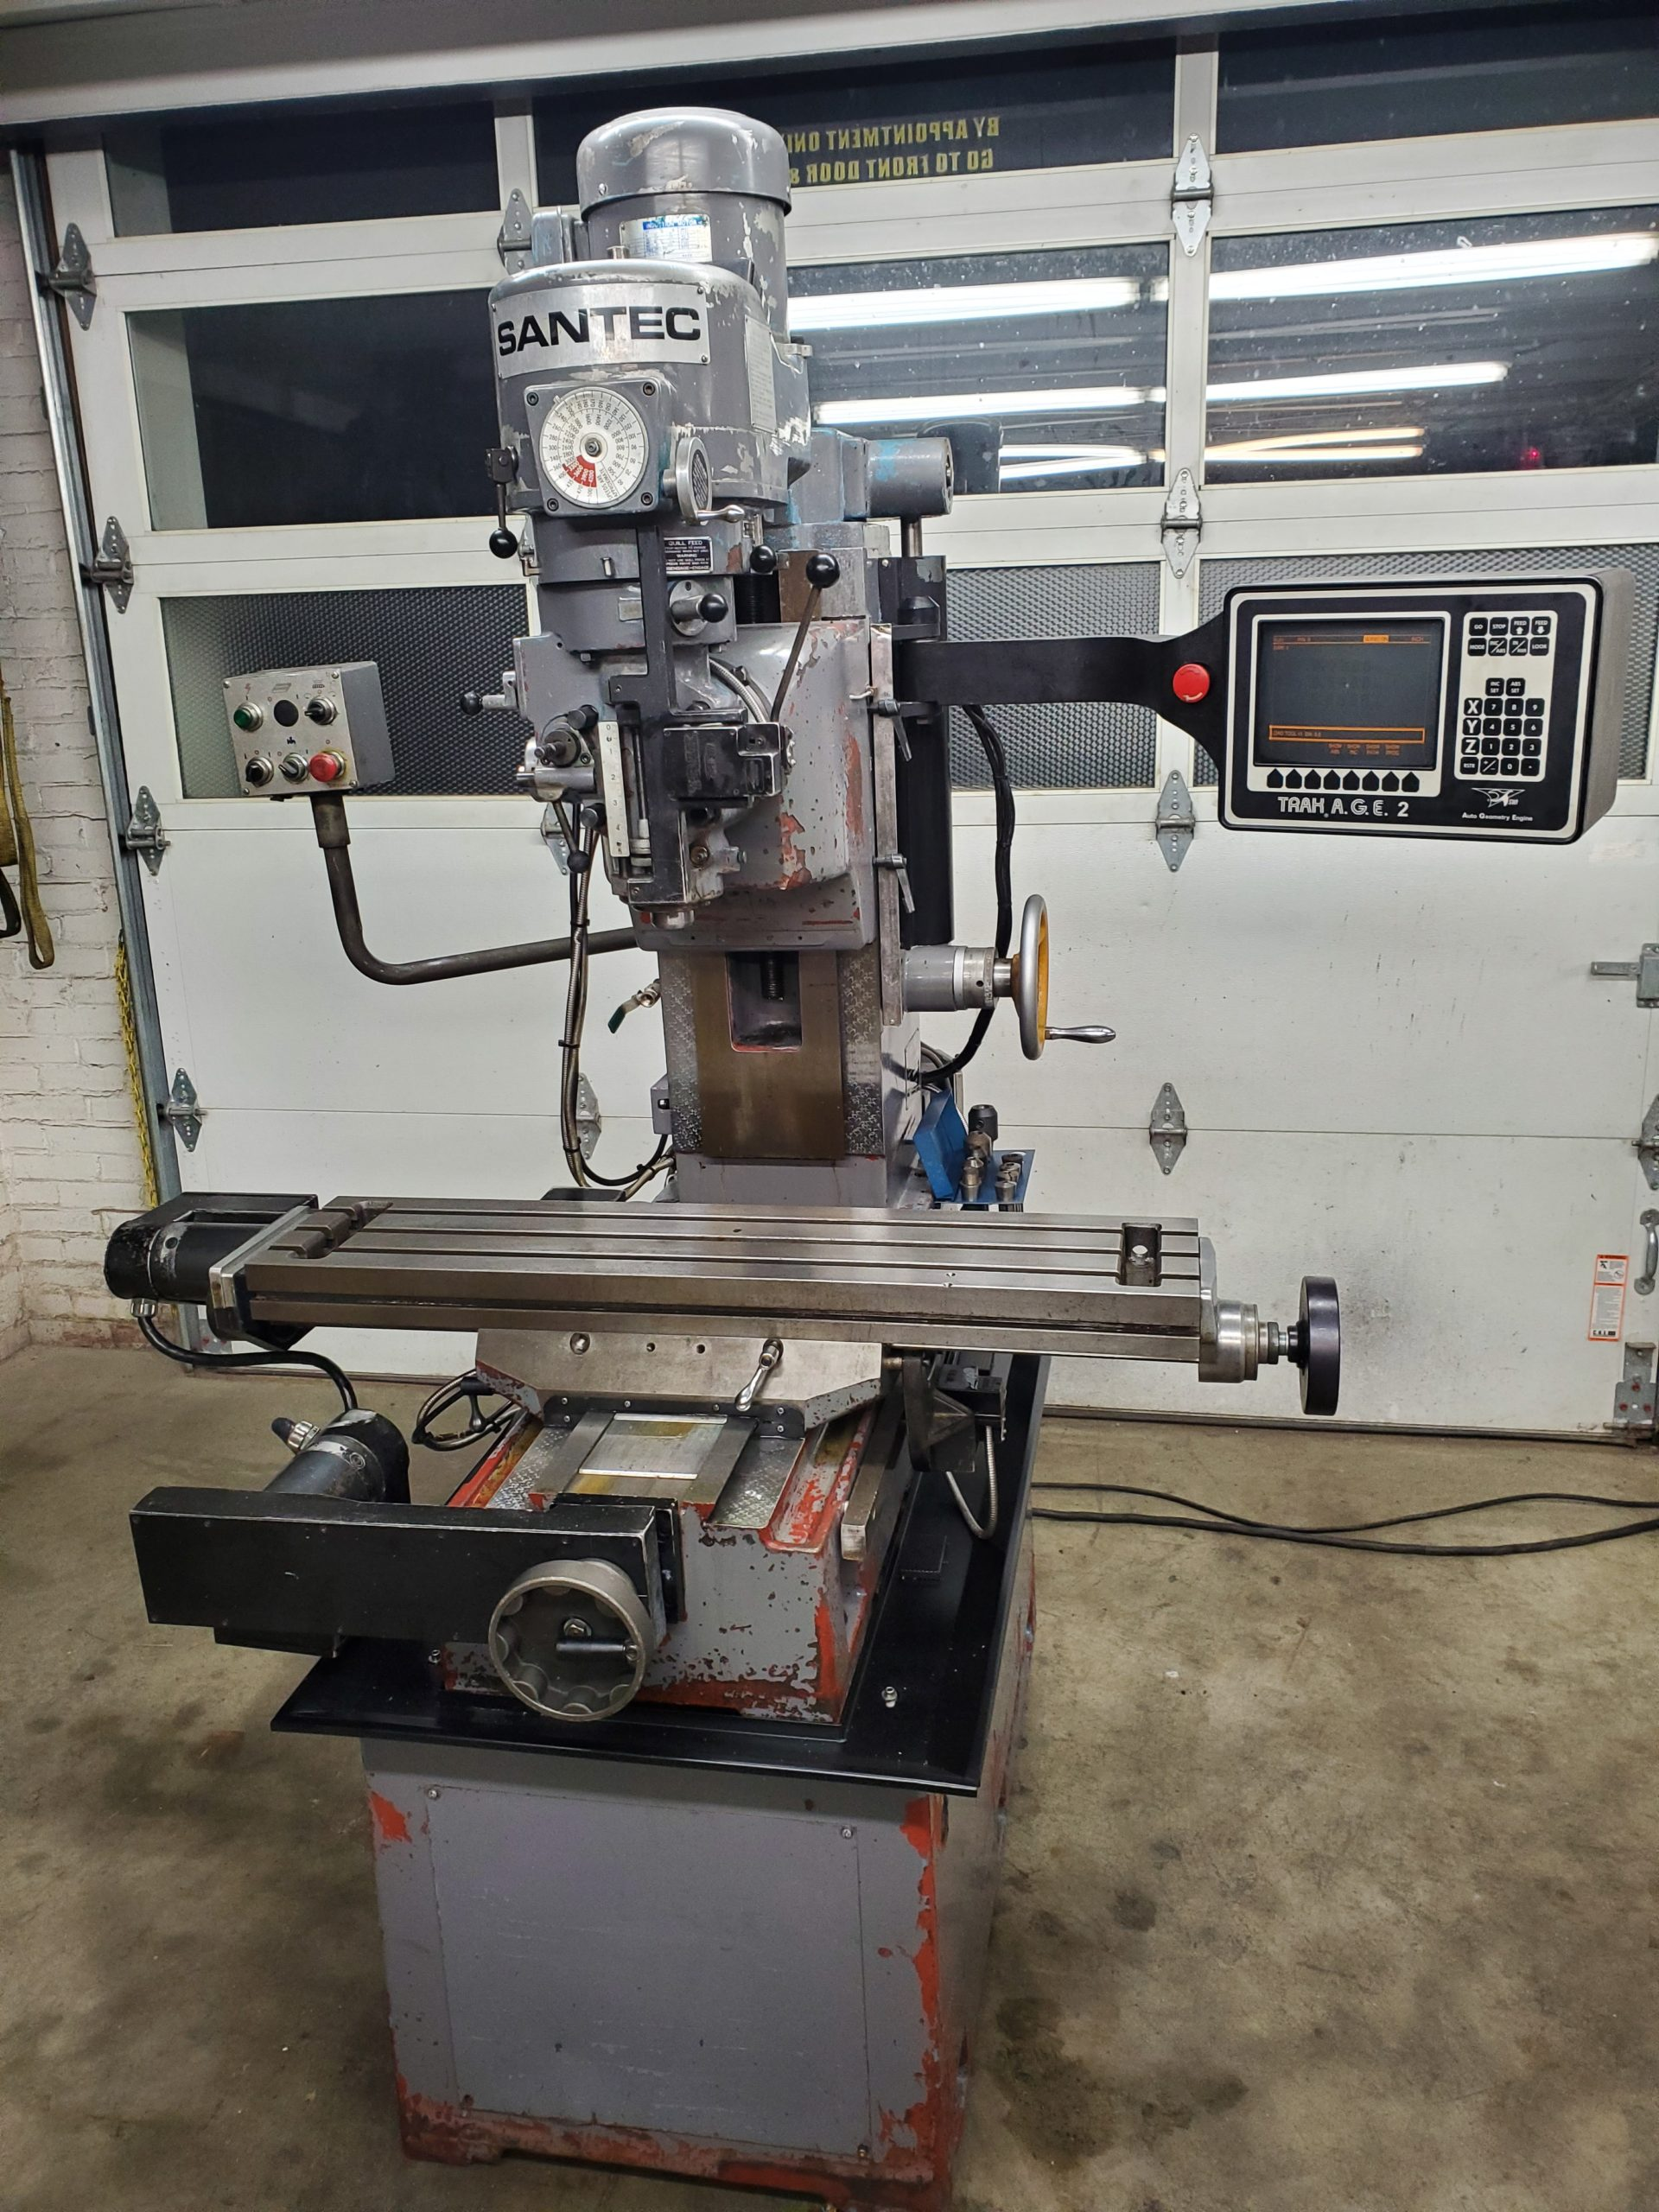 Sentec Bed Mill with Southwestern Industries CNC 2 axis Control Image